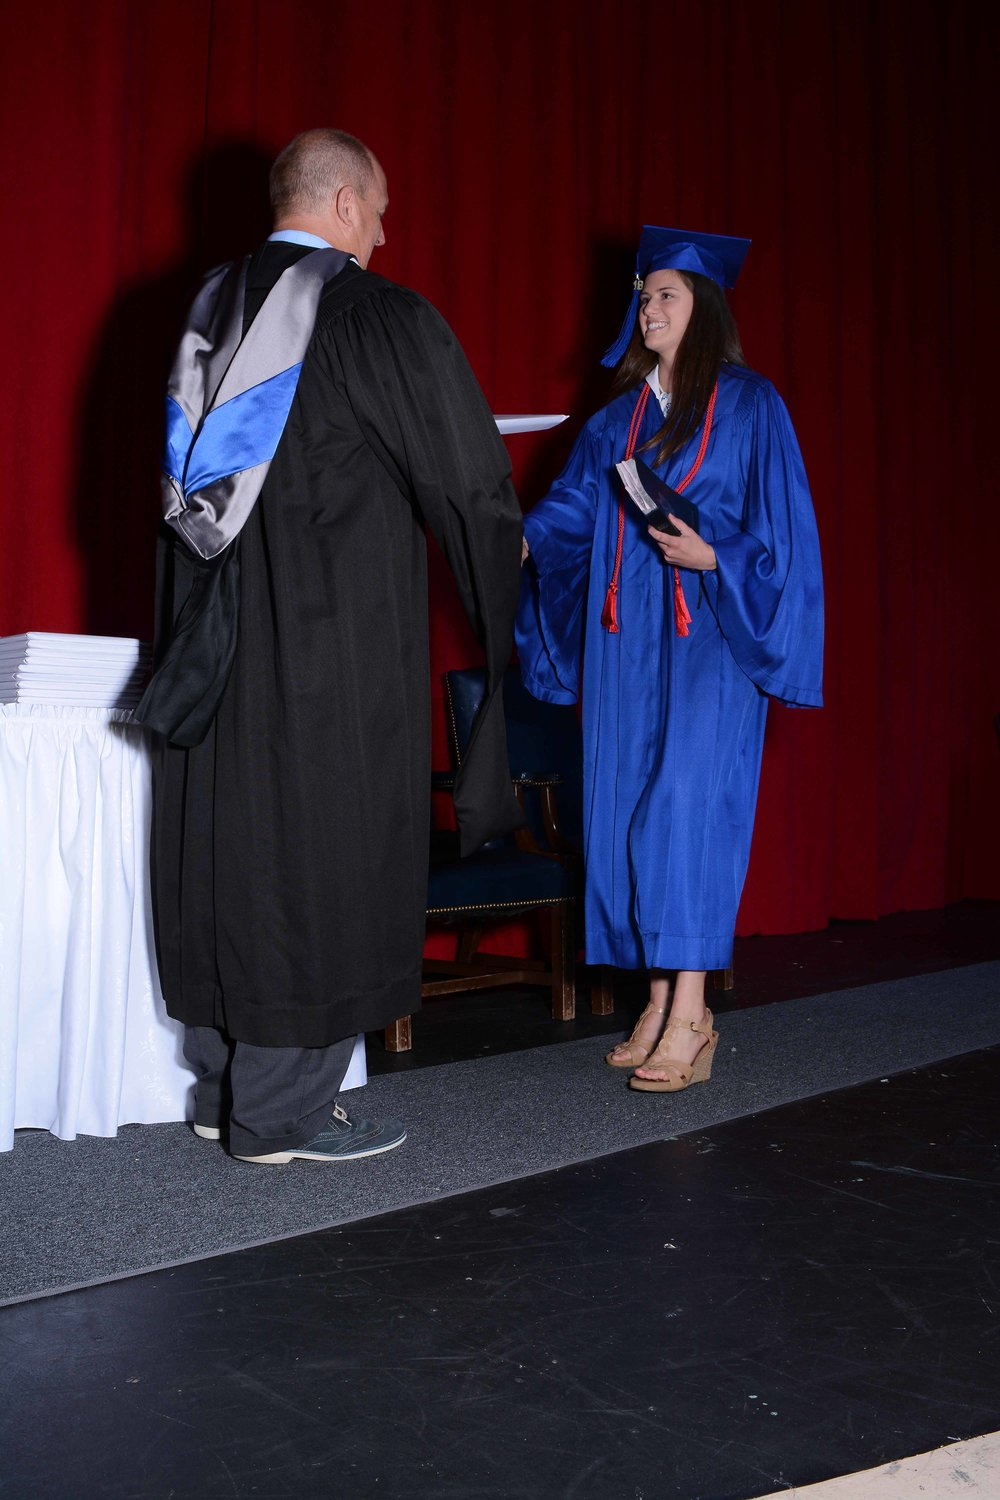 May14 Commencement98.jpg